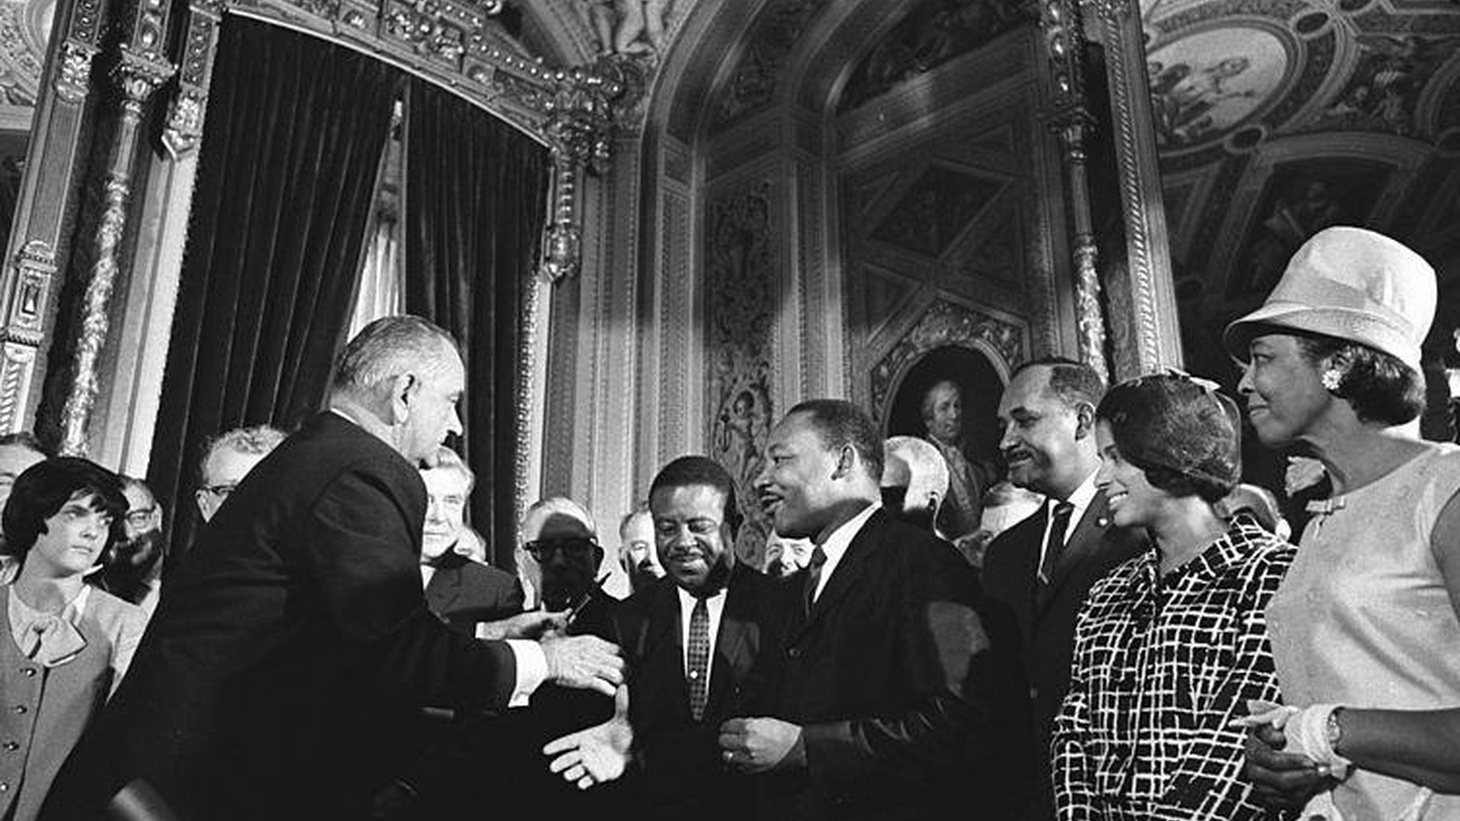 The US Supreme Court today struck at the heart of the Voting Rights Act of 1965. Is voting discrimination against blacks and other minorities a thing of the past?